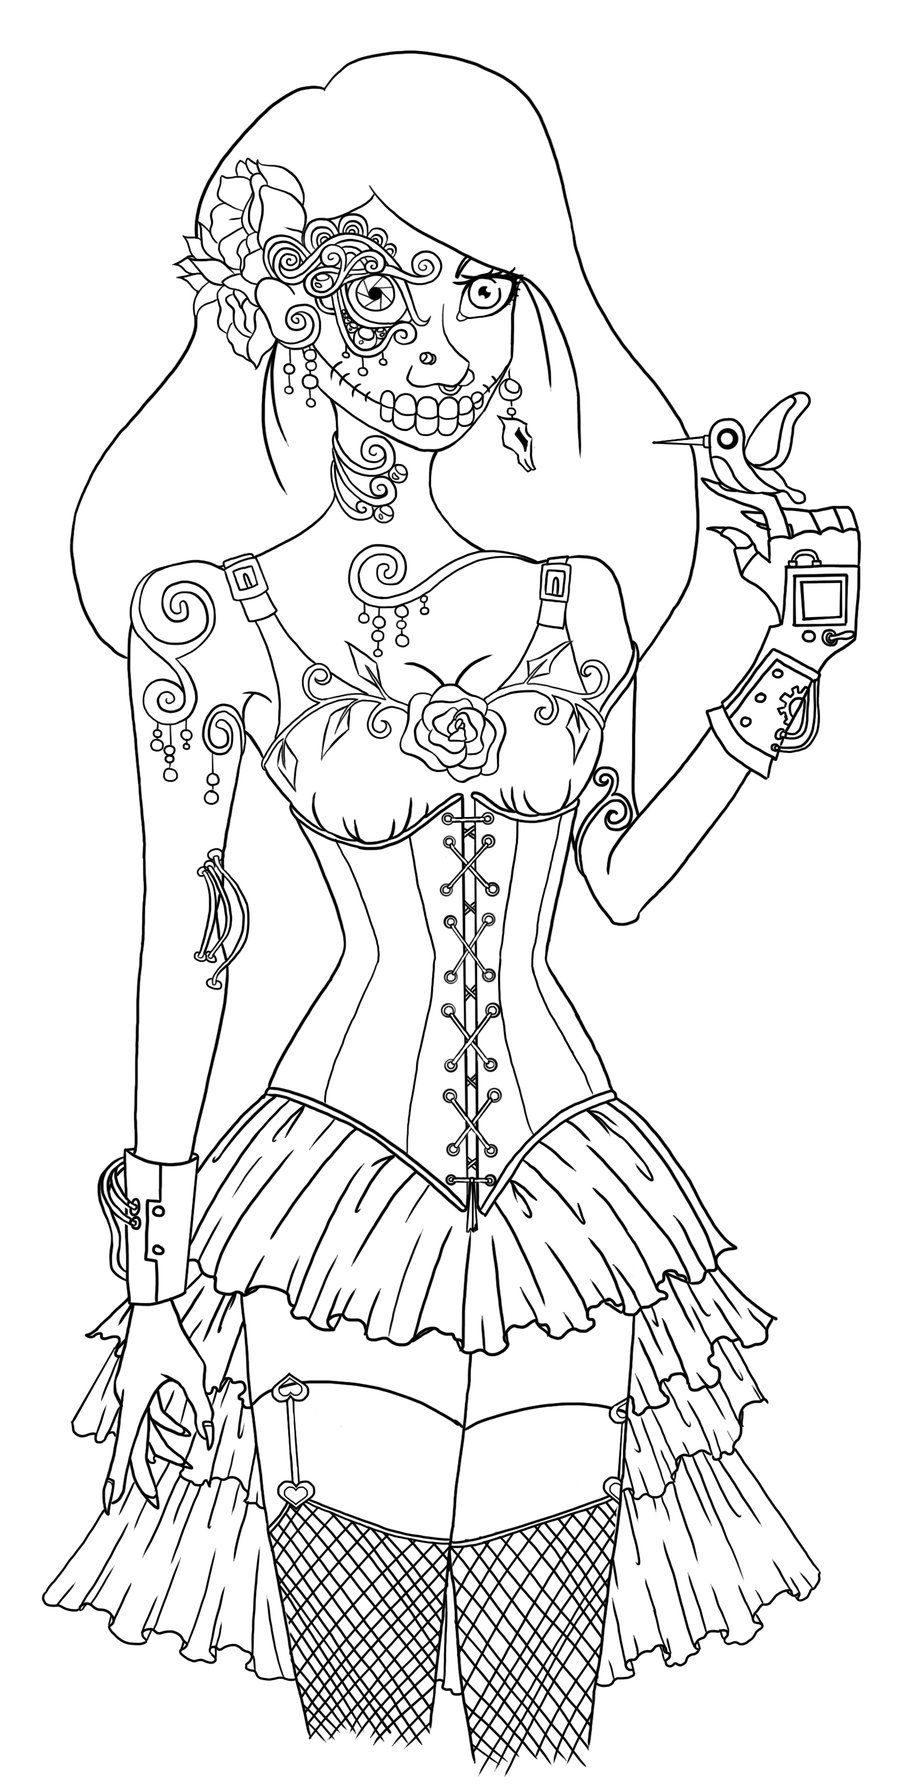 Coloring Books Day Of The Dead Steampunk Lineart By Woodspell